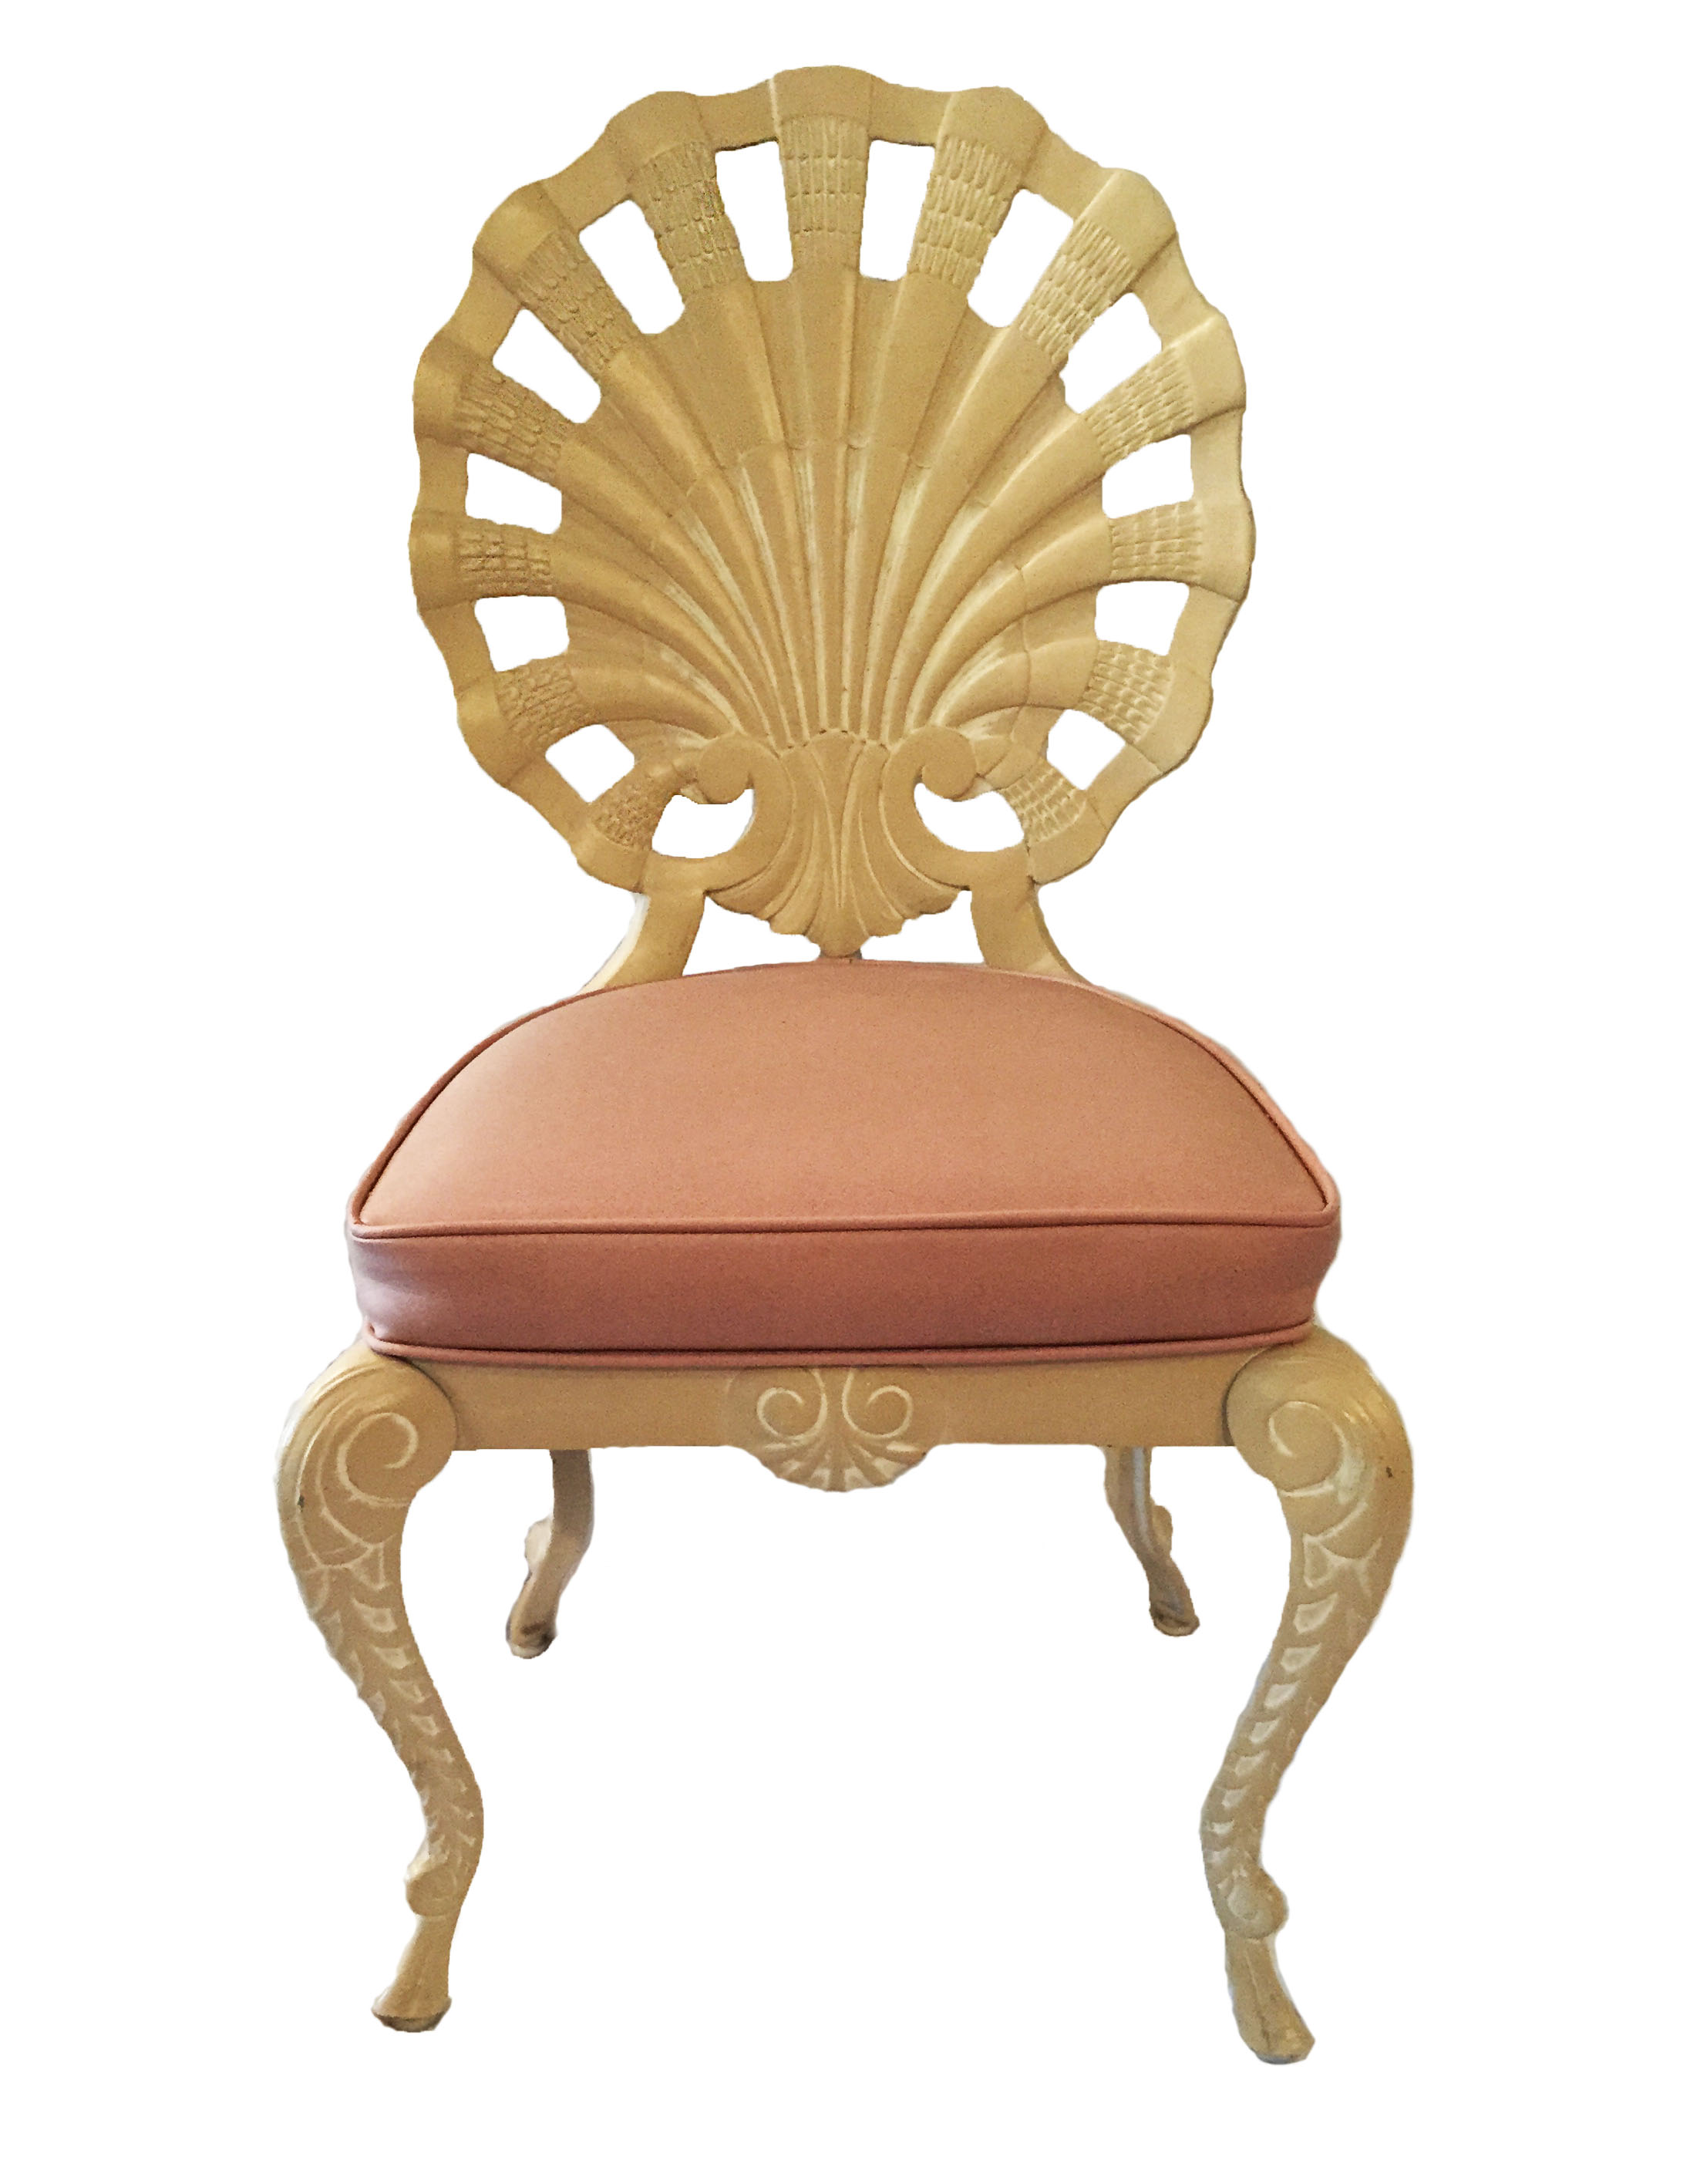 Brown-Jordan Grotto Scallop Shell Chairs Set of 6 on Chairish.com